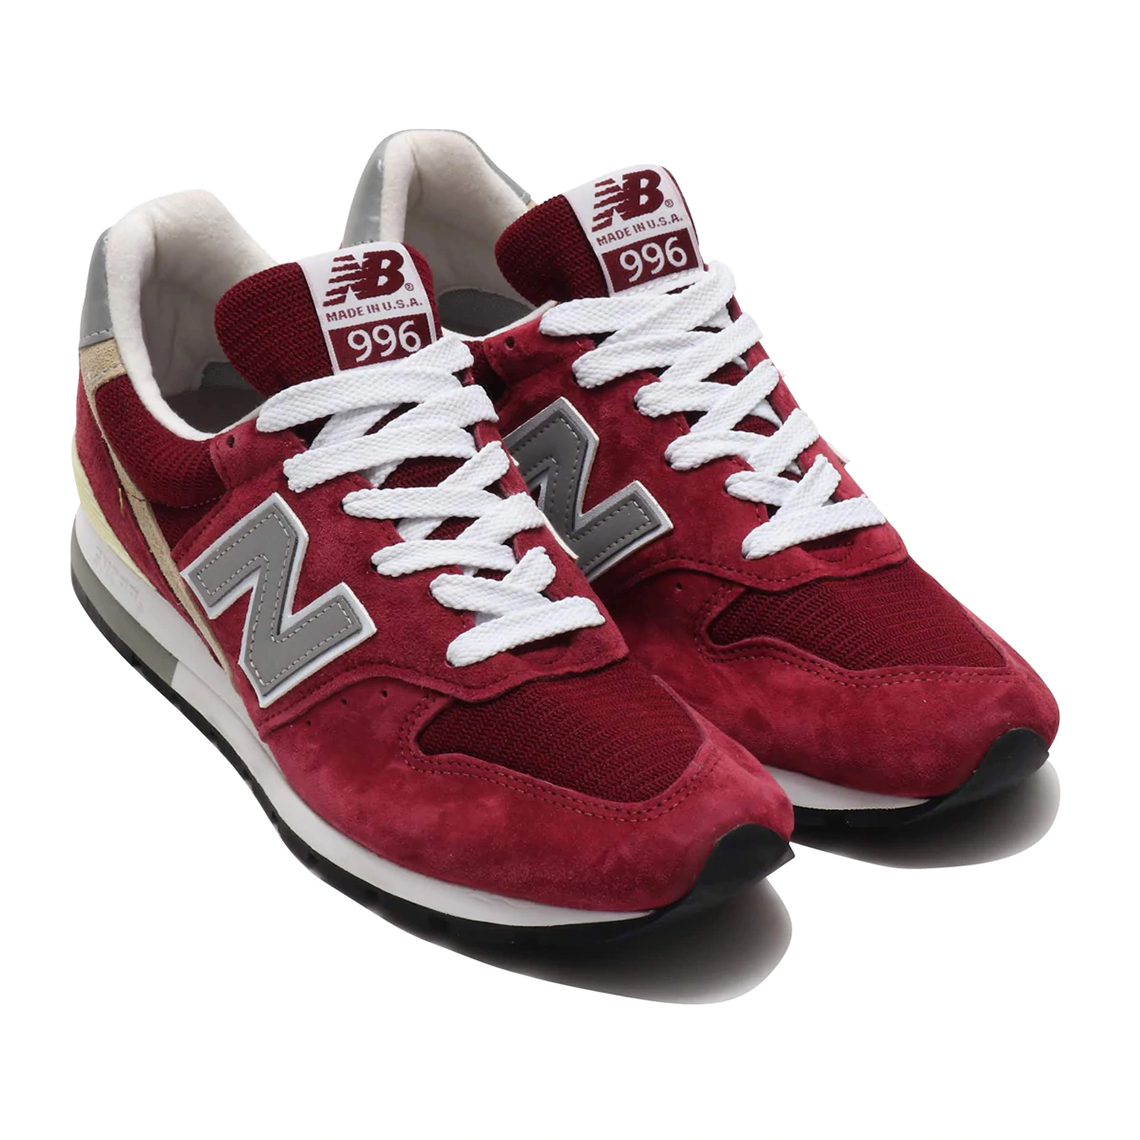 best service 51356 7715e New Balance 996 Made In USA Black + Red | SneakerNews.com